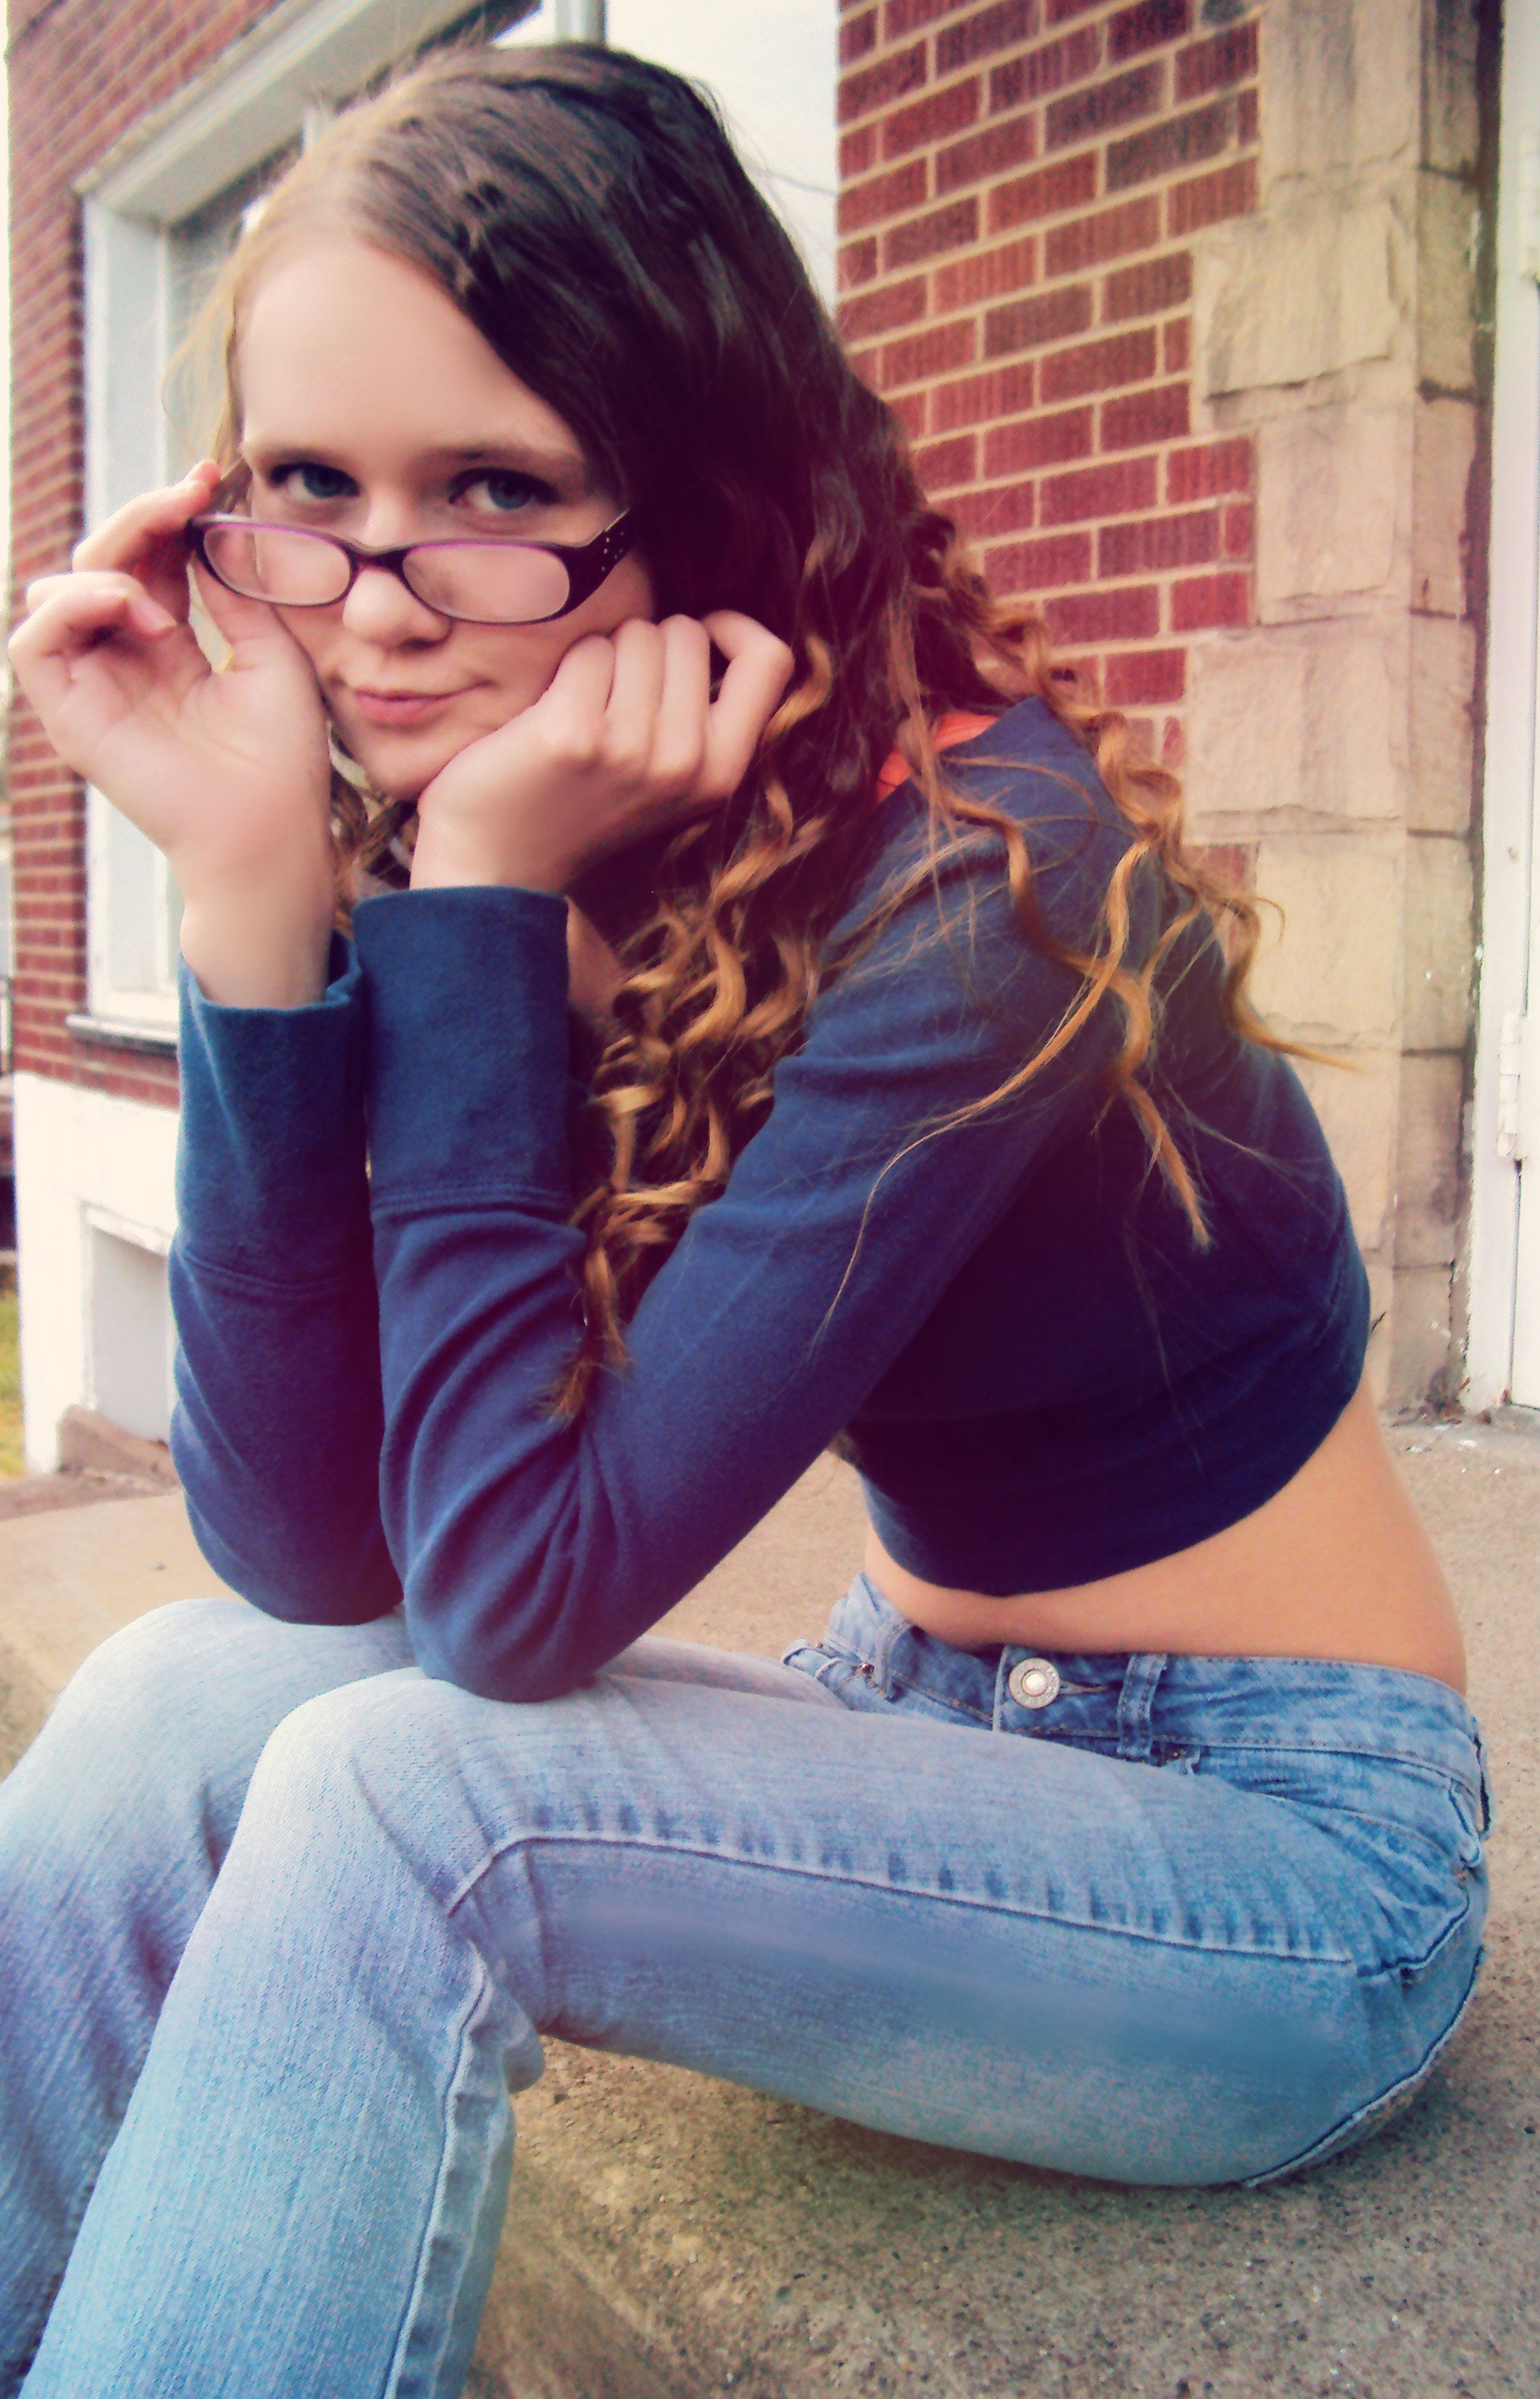 hot librarian look (With images) | Mom jeans, My best